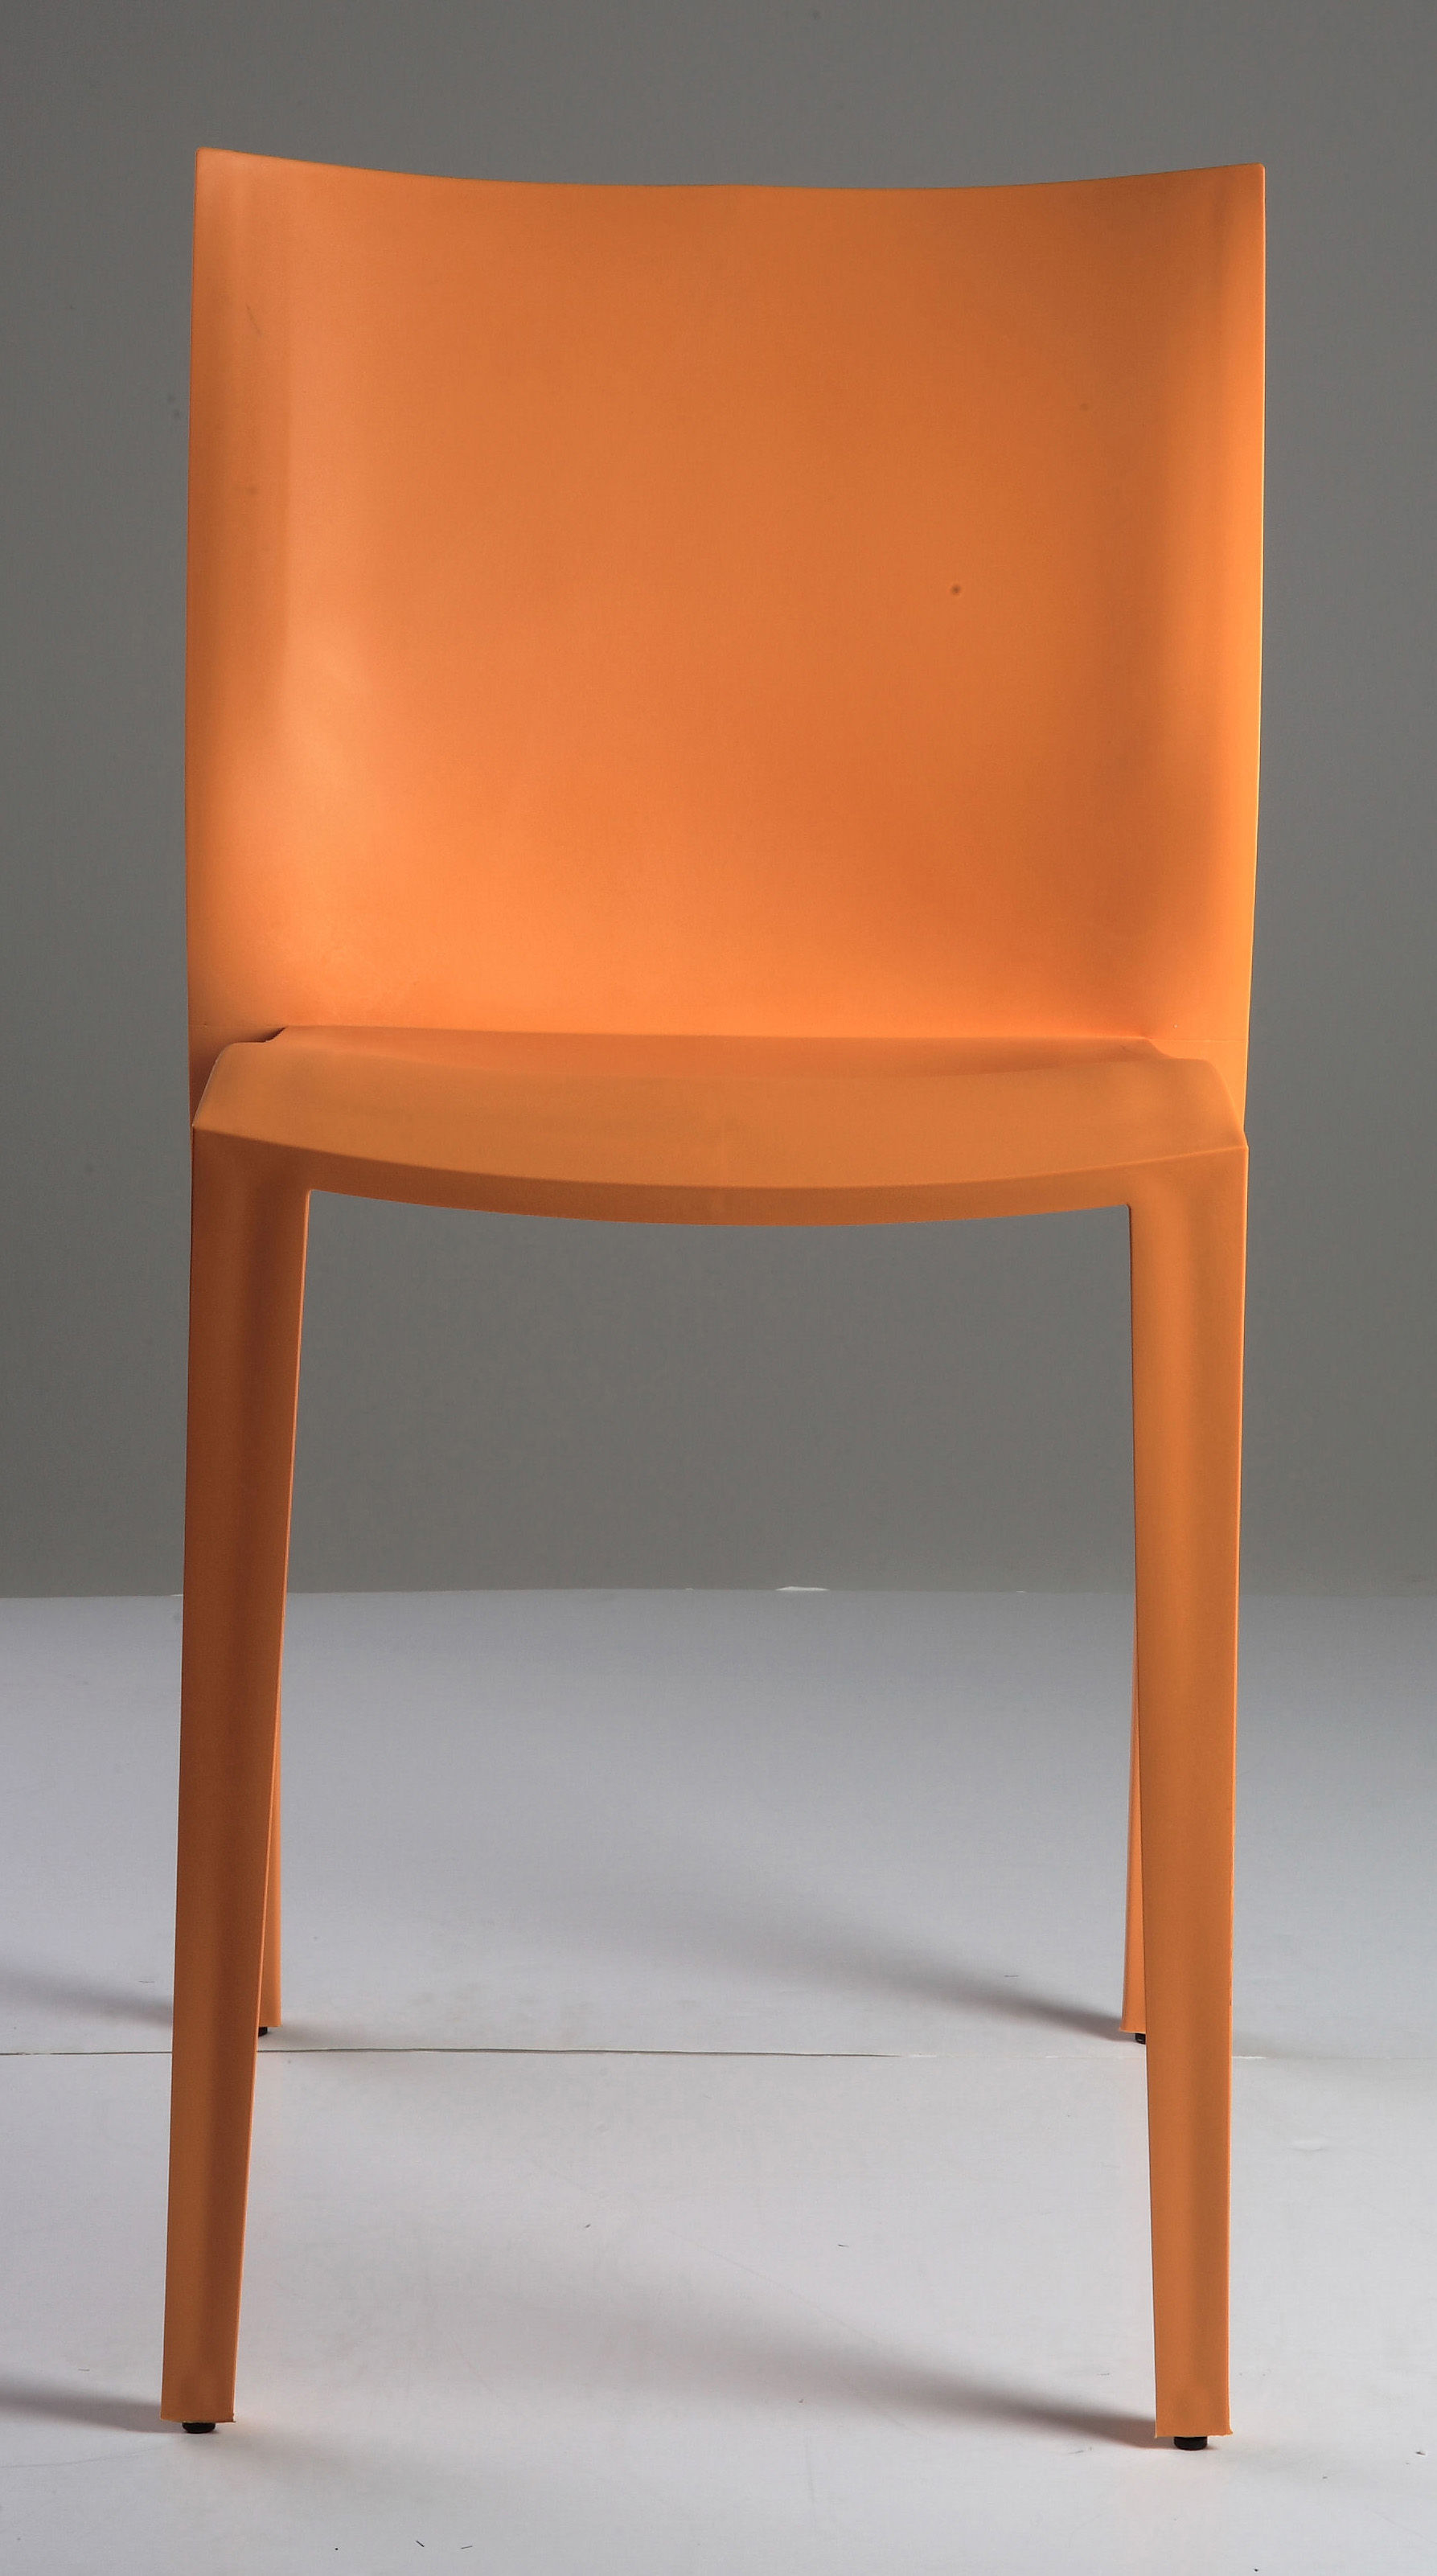 Chaise Slick Slick Starck Chaise Slick Slick Orange Xo